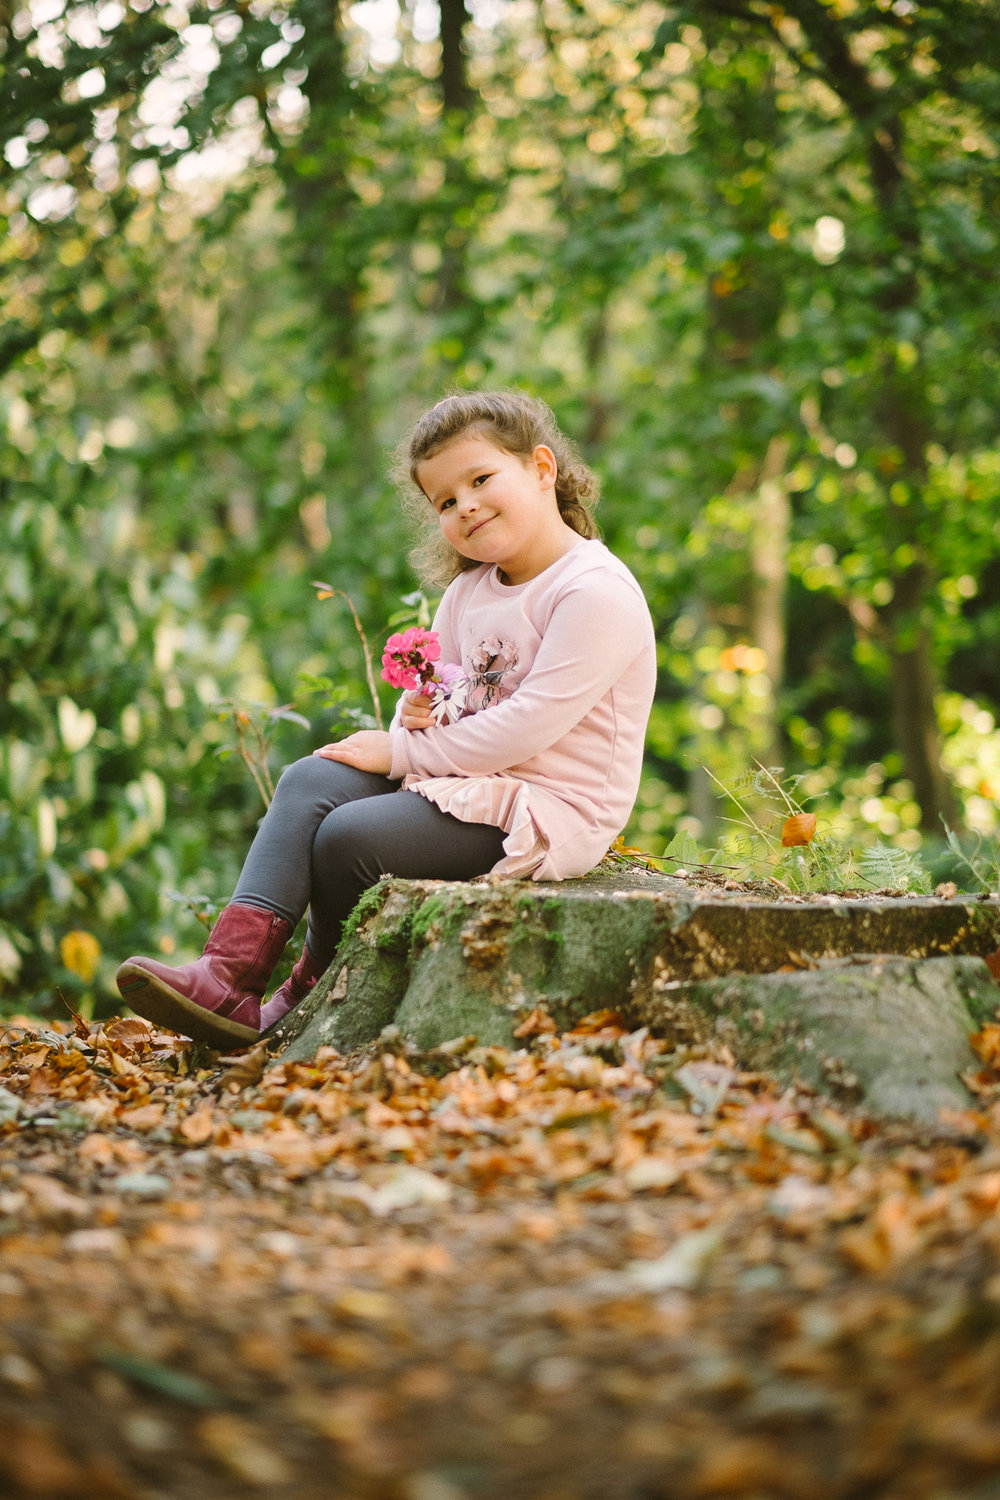 Outdoor sessions £95 - - Pre-shoot consultation-On location at a park or beach. Think Jesmond Dene or Tynemouth Longsands.- Up to 2 hour shoot (includes travelling)- Up to 50 high res photos ready to print- Password protected online gallery- Minimum age 4 months